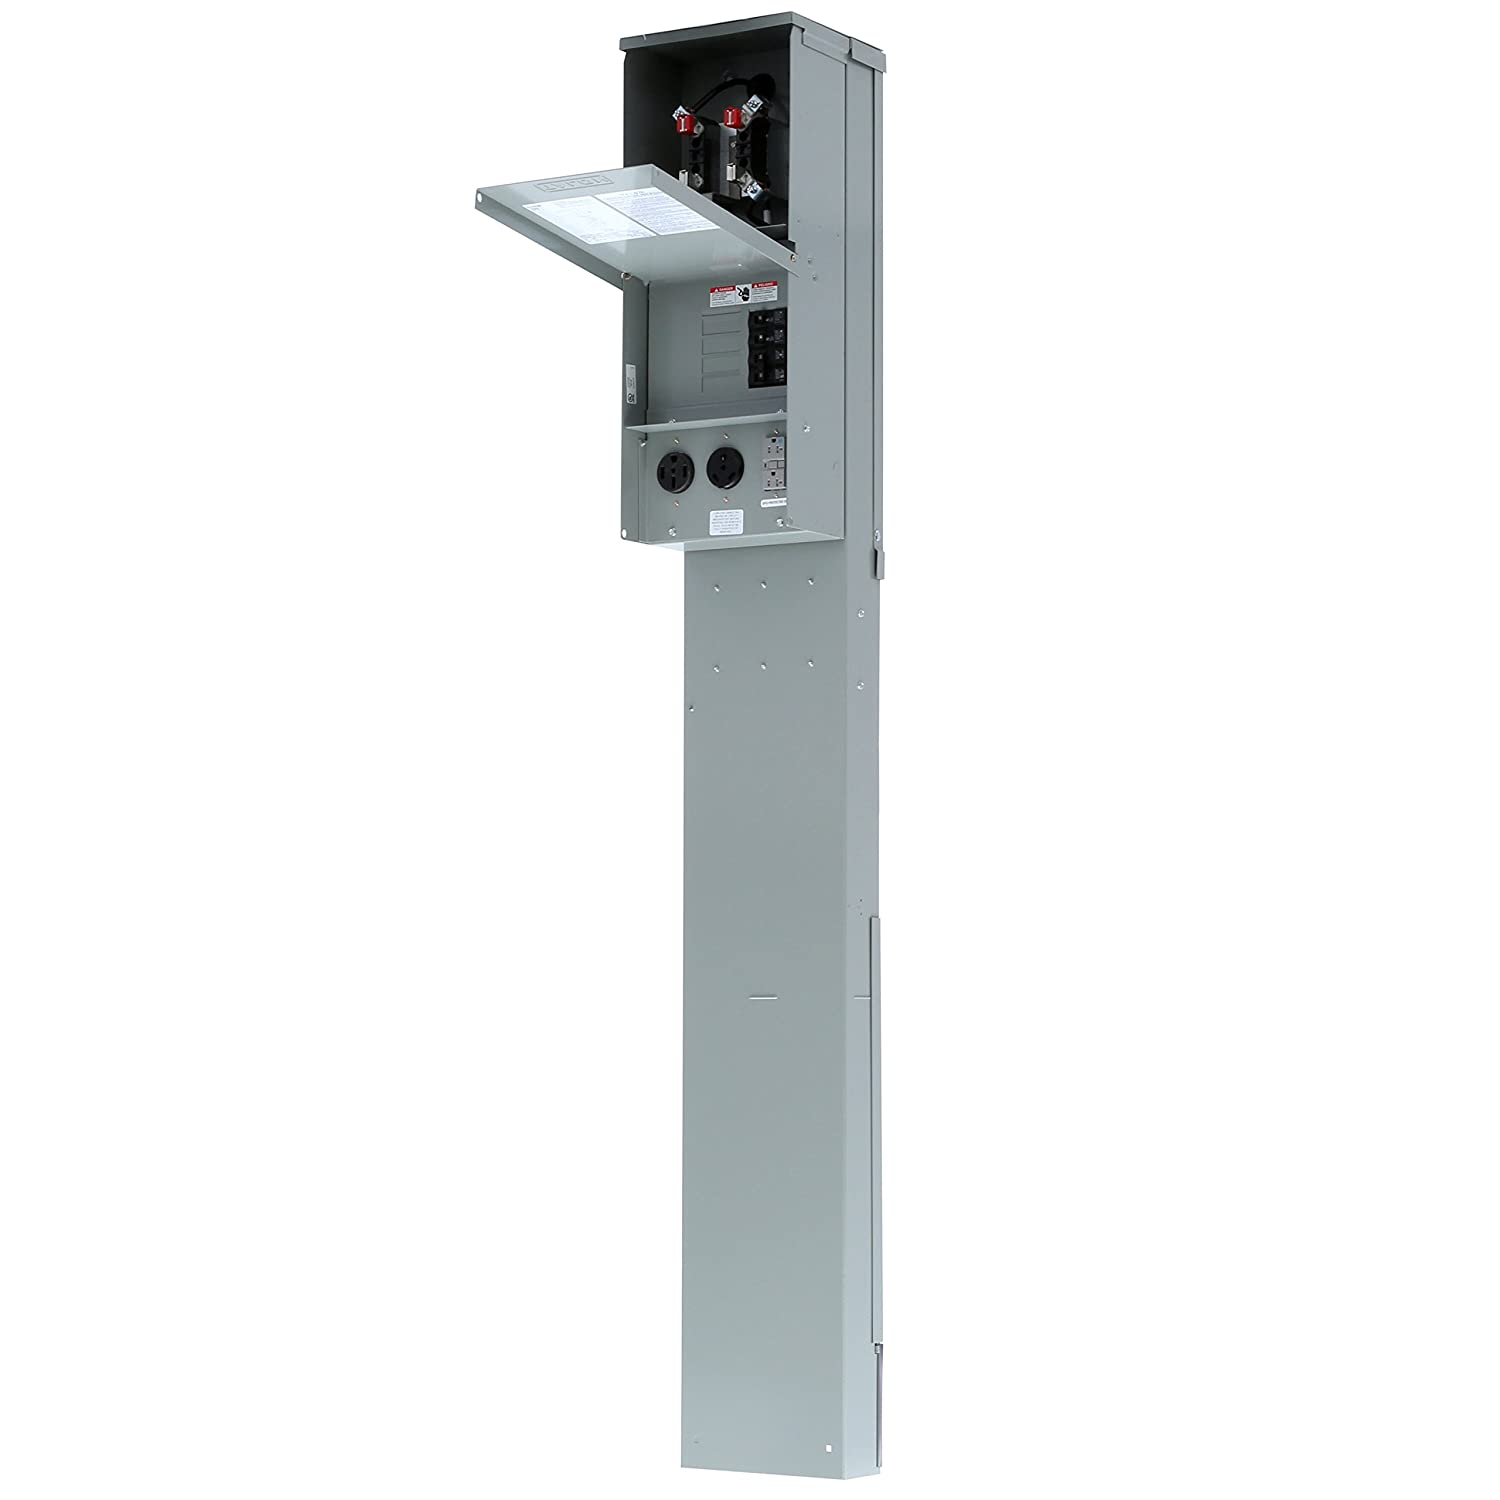 Siemens Tl137np Talon Temporary Power Outlet Panel Pedestal With A Shop Eaton 20circuit 10space 100amp Main Breaker Load Center Value 20 30 And 50 Amp Receptacle Installed Includes Ring Type Meter Socket Provision